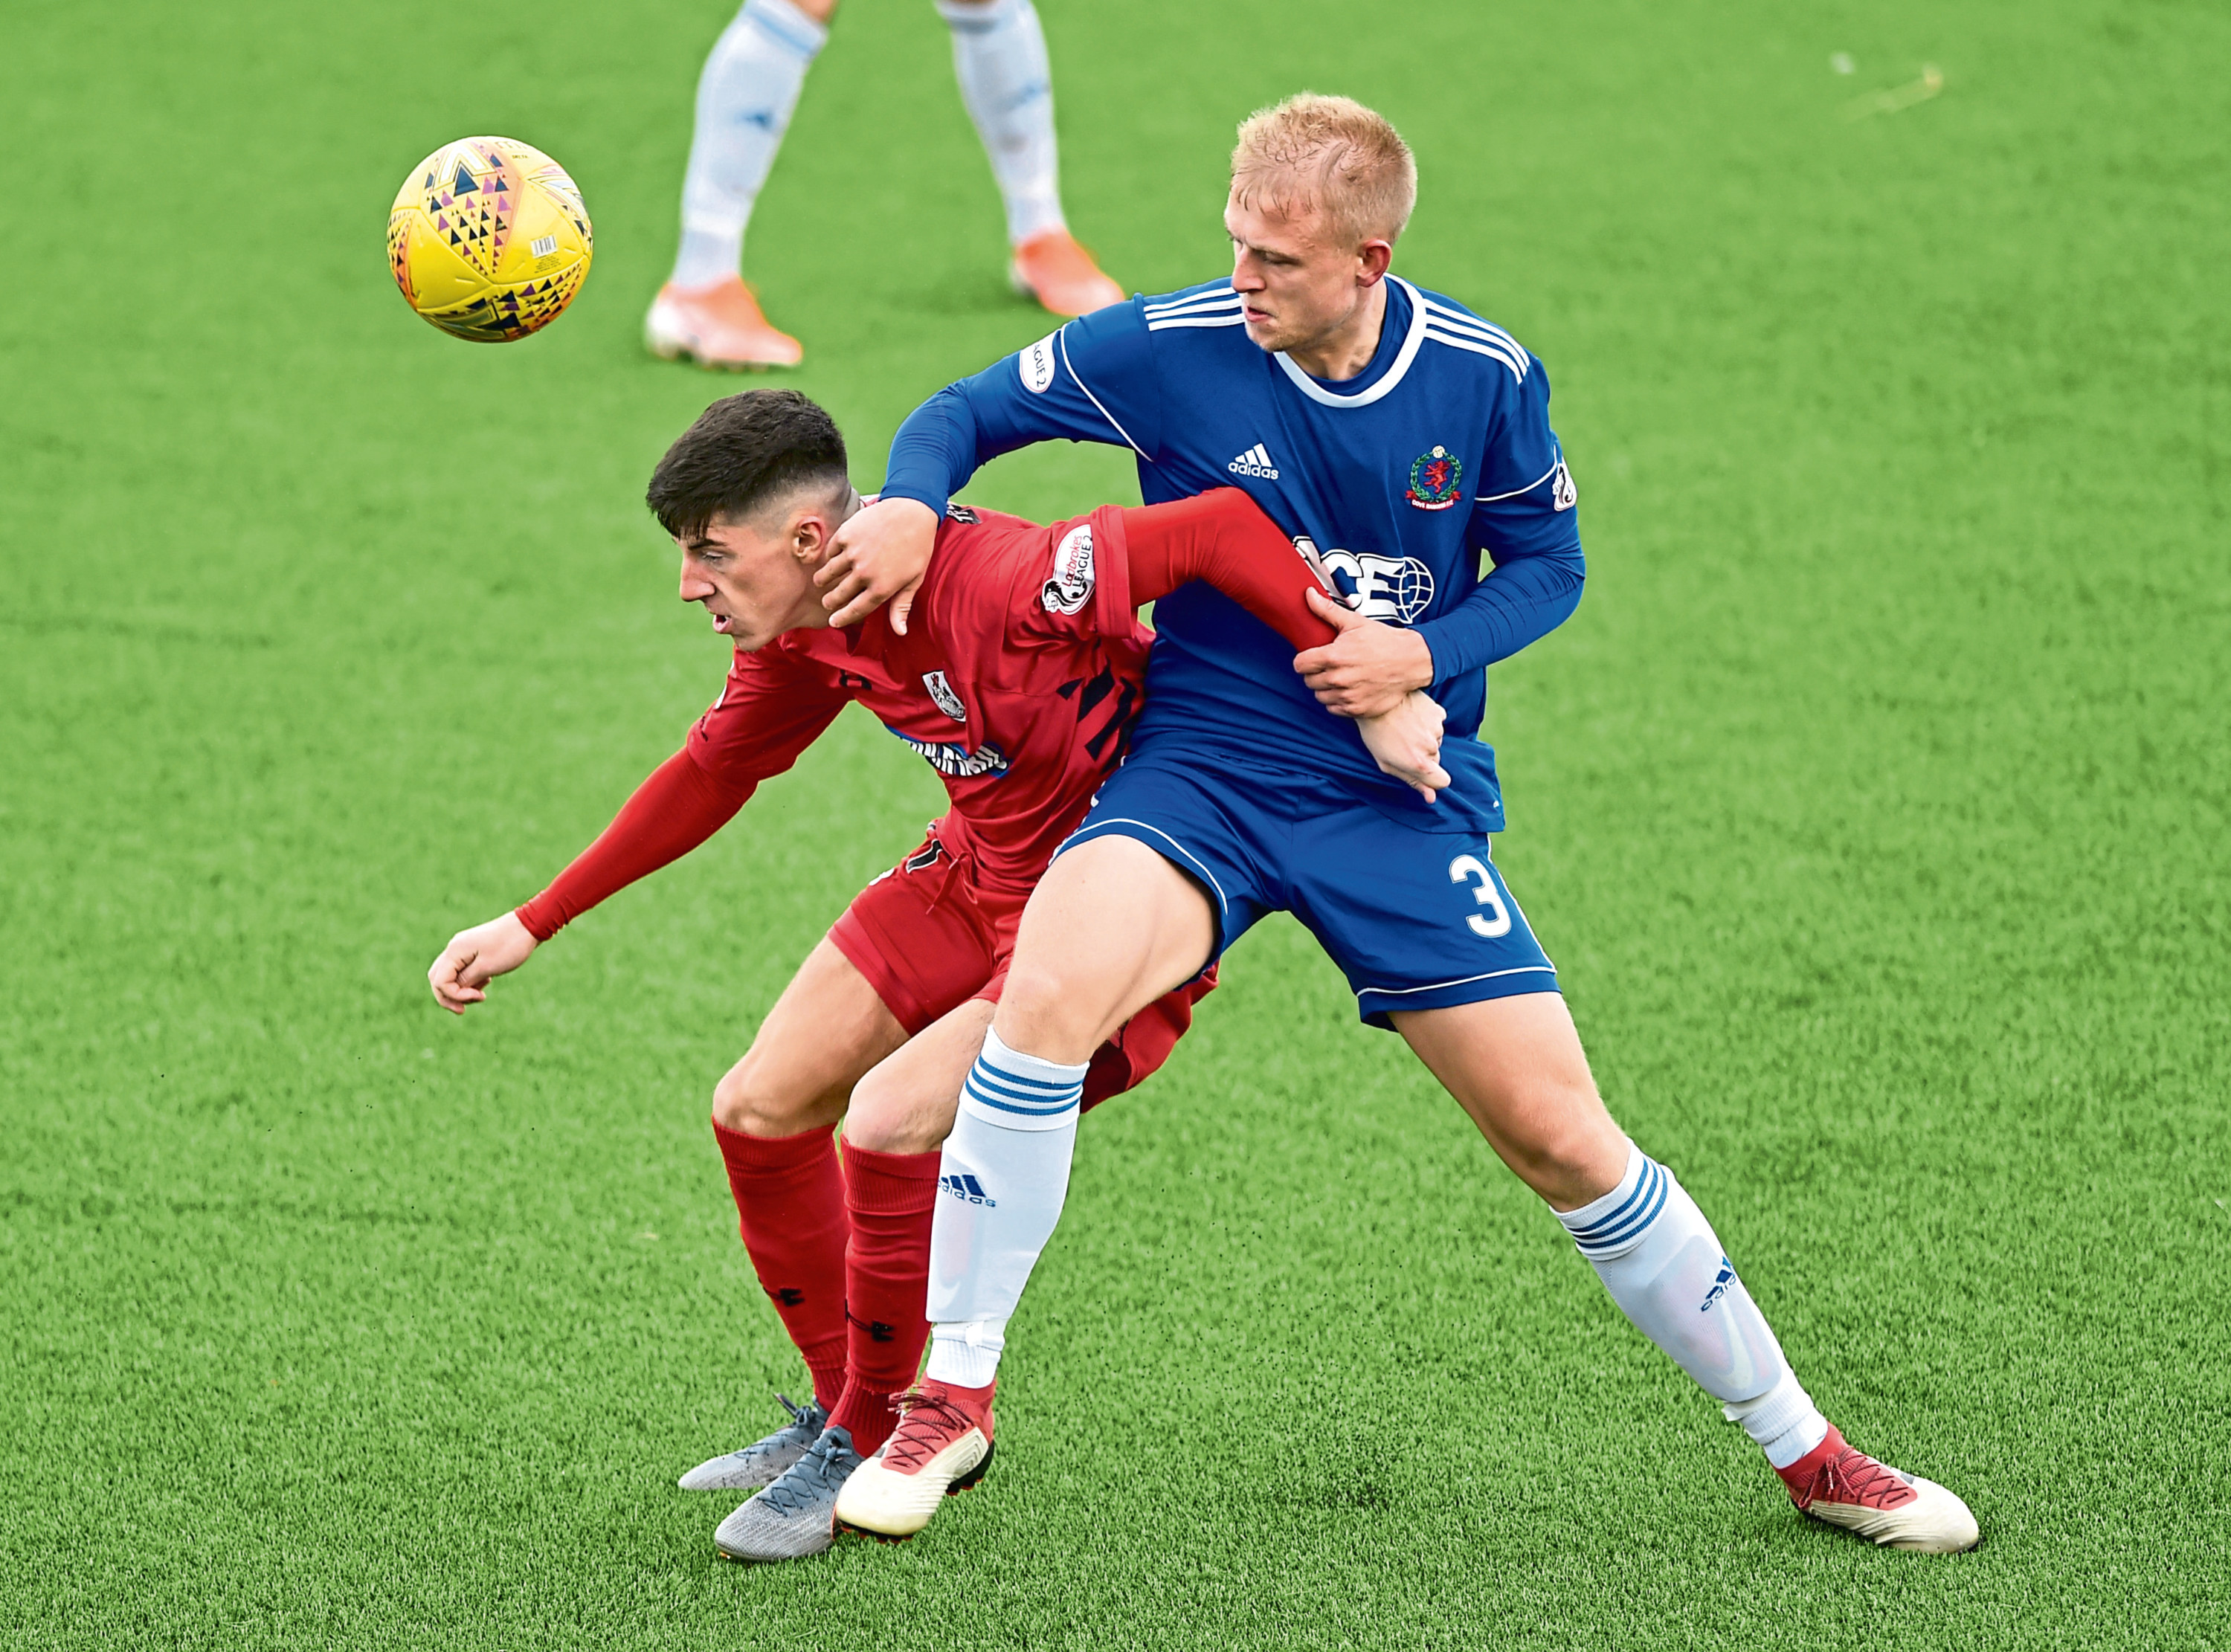 Cove's Harry Milne. Picture by Colin Rennie